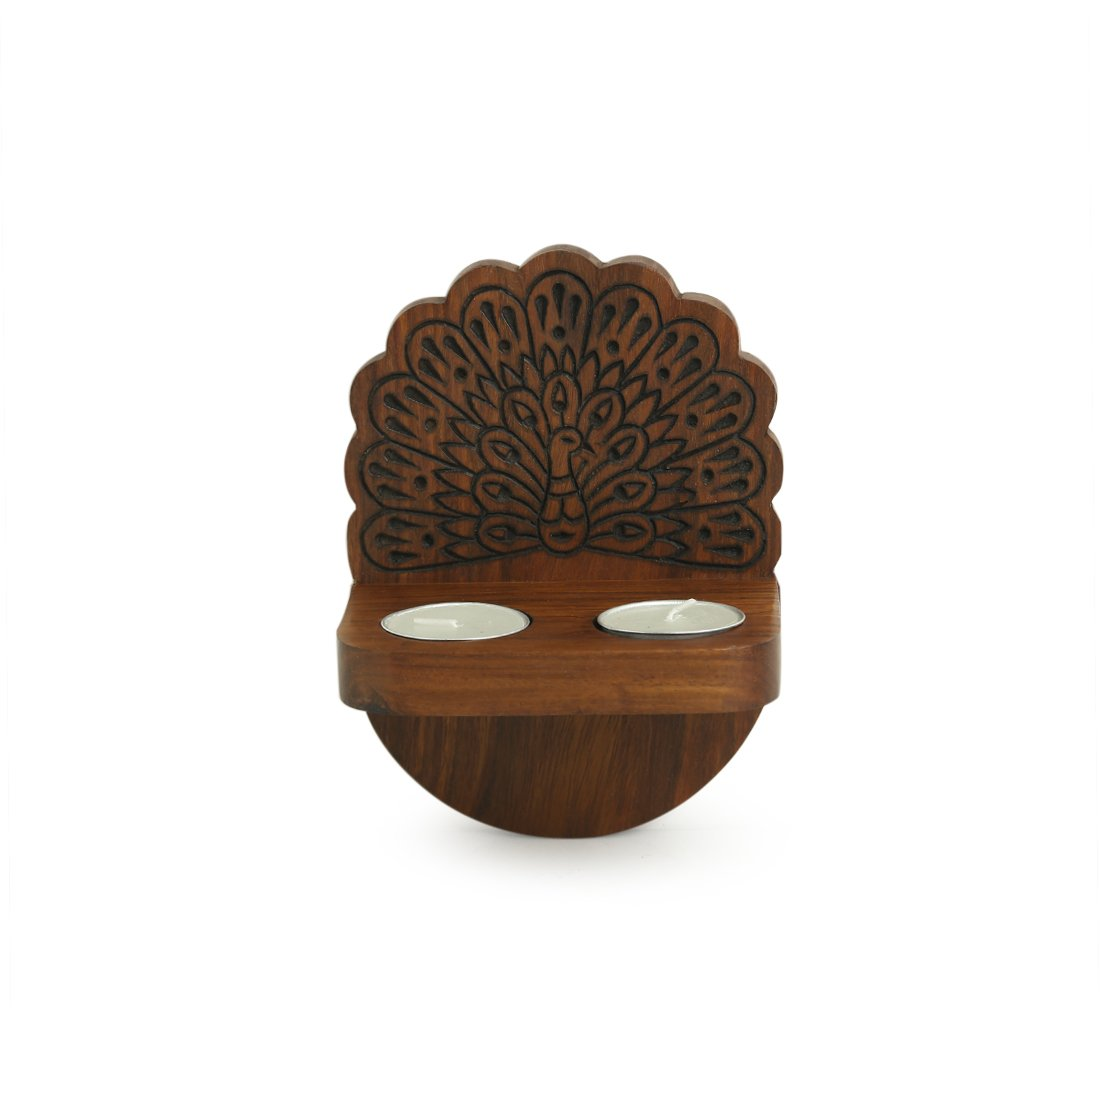 'The Dancing Peacock' Hand Carved Wall Tea Light Holder in Sheesham Wood